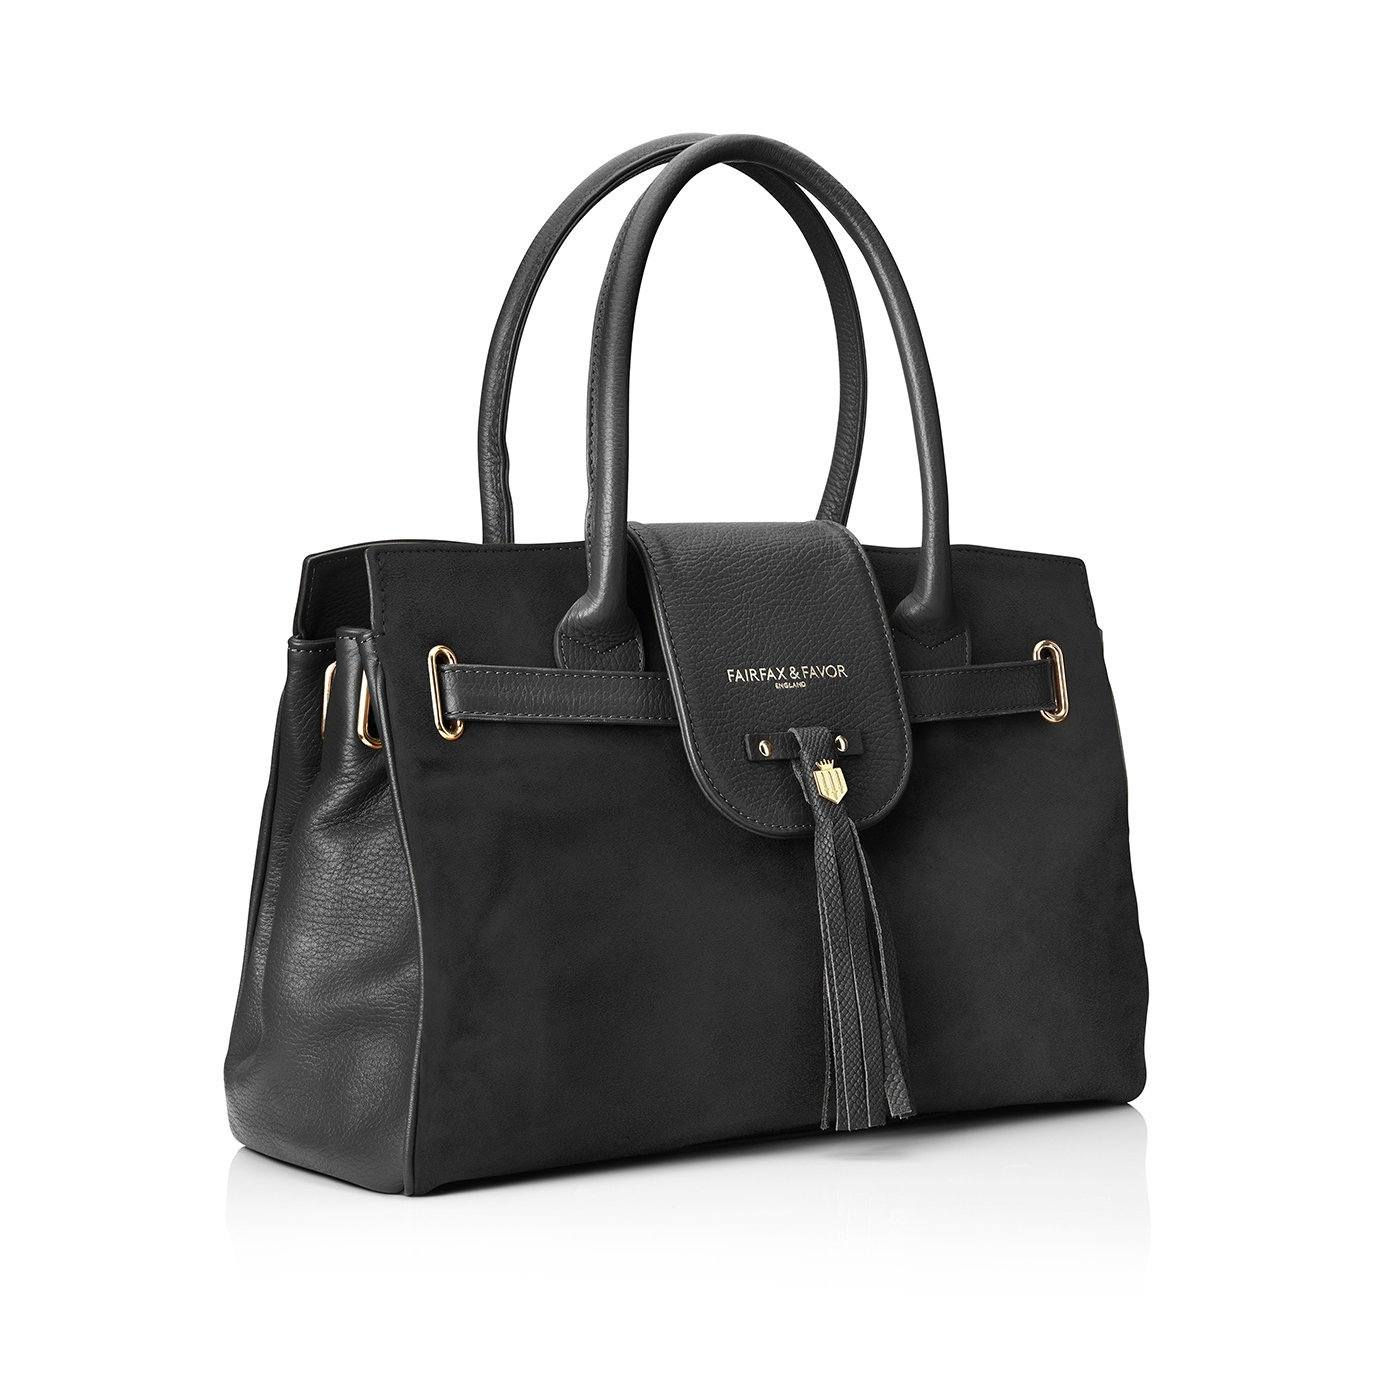 Windsor Leather & Suede Handbag, sort